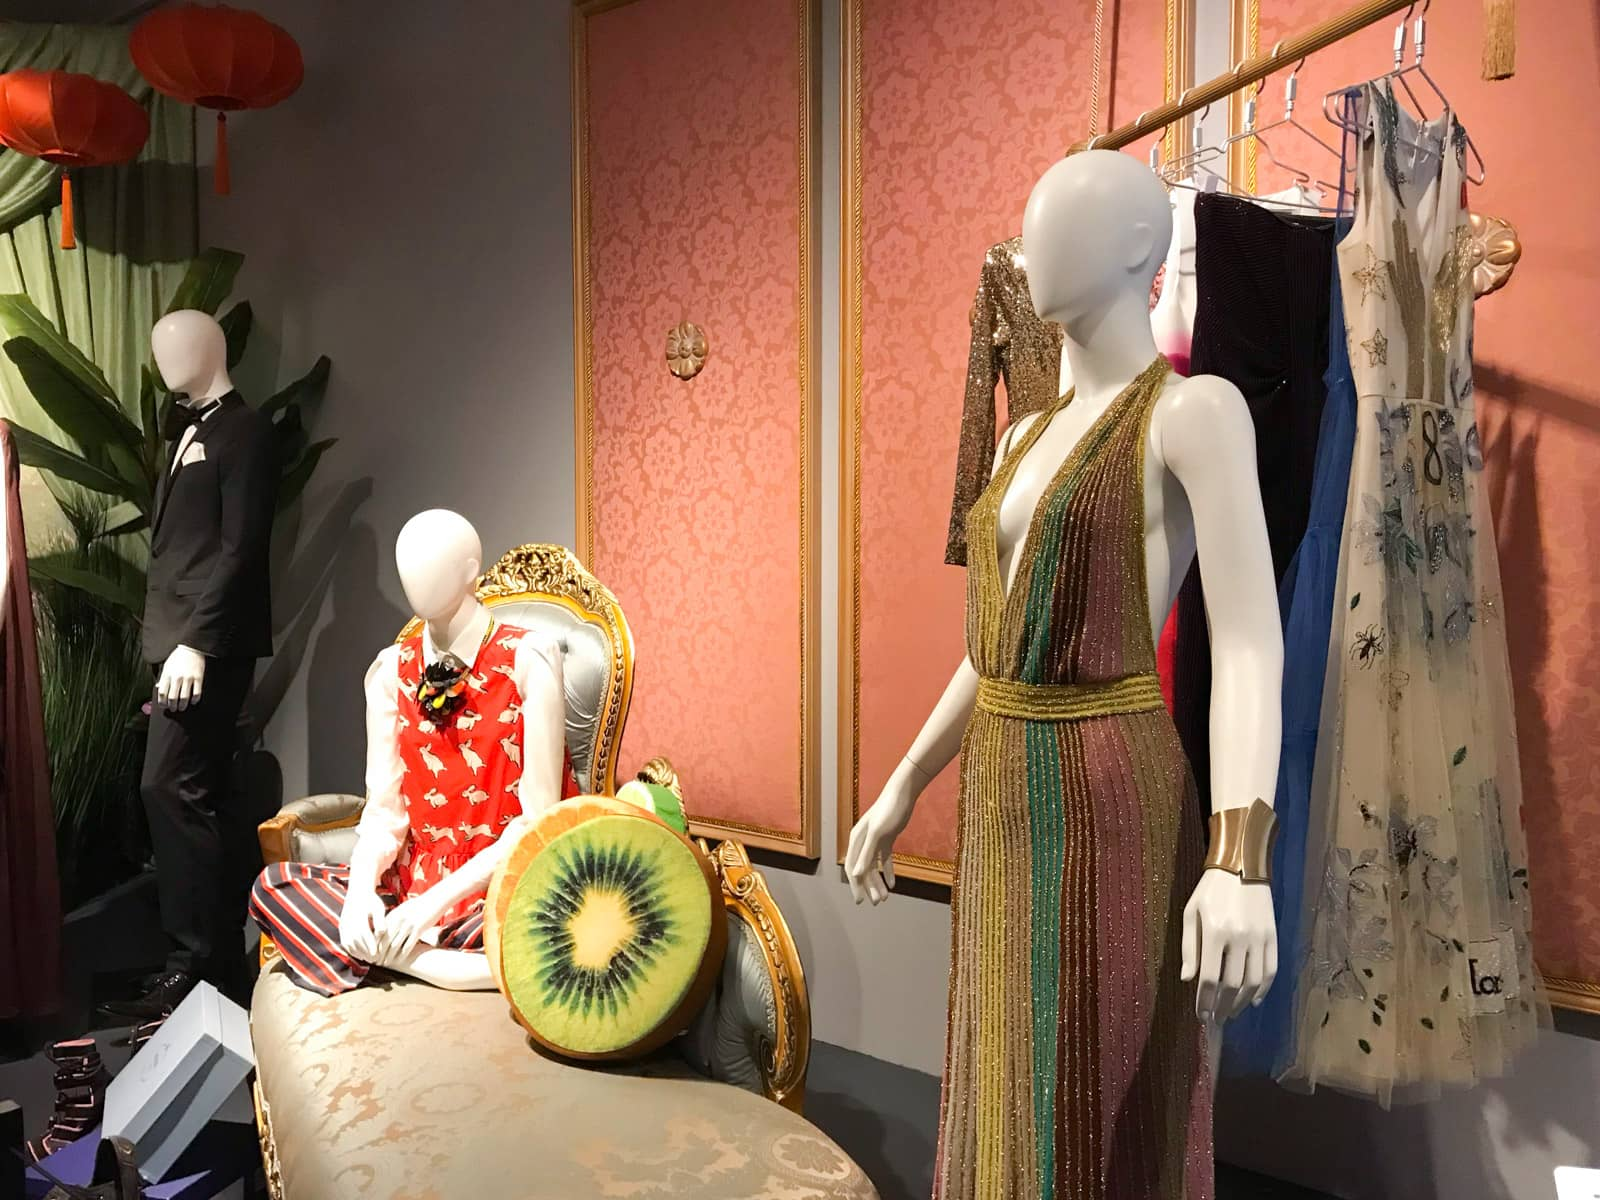 Mannequins on display with a couple of different characters, one sitting on a couch and the other in a ballgown. A rack of clothes stands behind one mannequin. There is a kiwi-fruit-styled cushion on the couch.